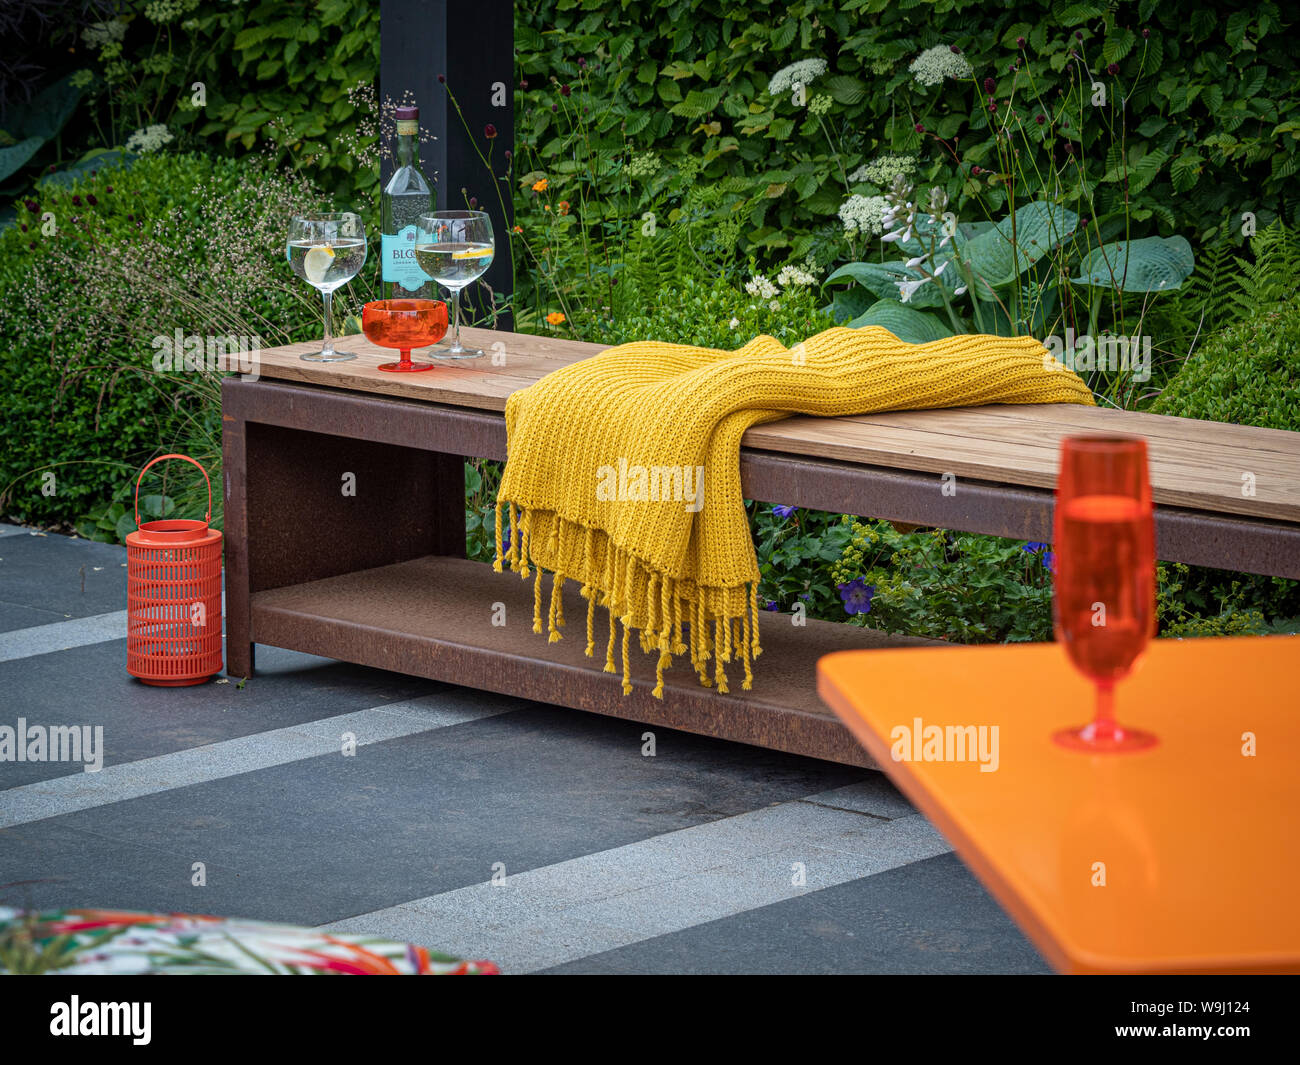 Cool Outdoor Wood And Metal Garden Bench On Grey Stone Patio Area Caraccident5 Cool Chair Designs And Ideas Caraccident5Info